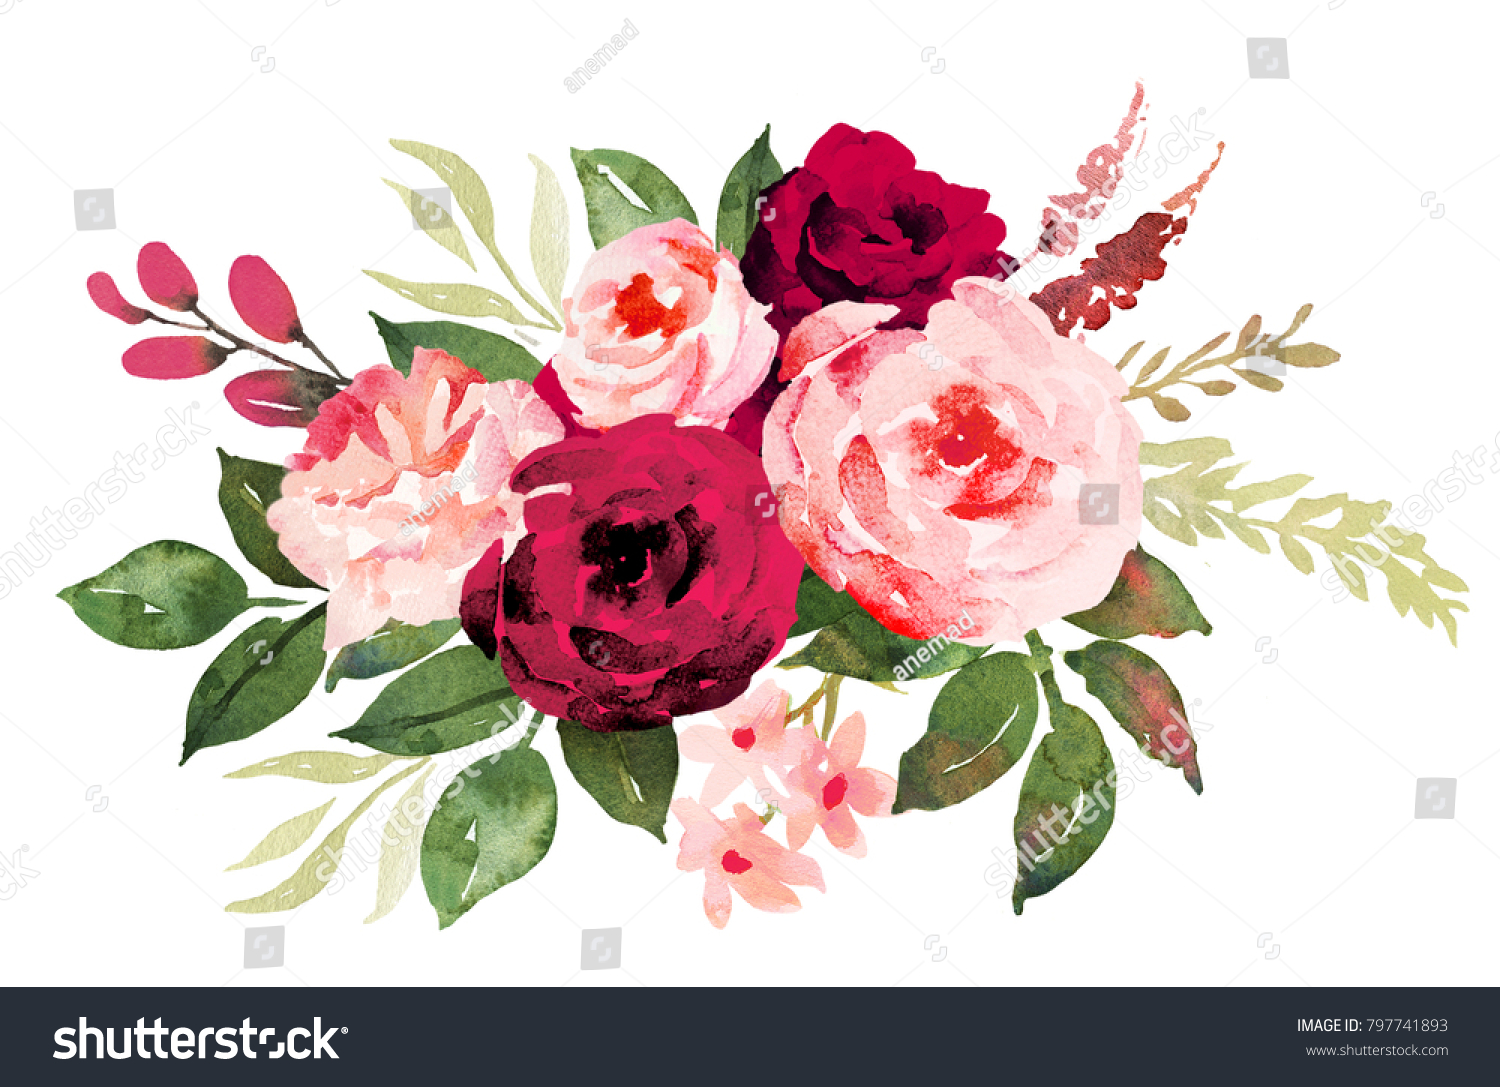 Flower Bouquet Red Pink Roses Watercolor Stock Illustration